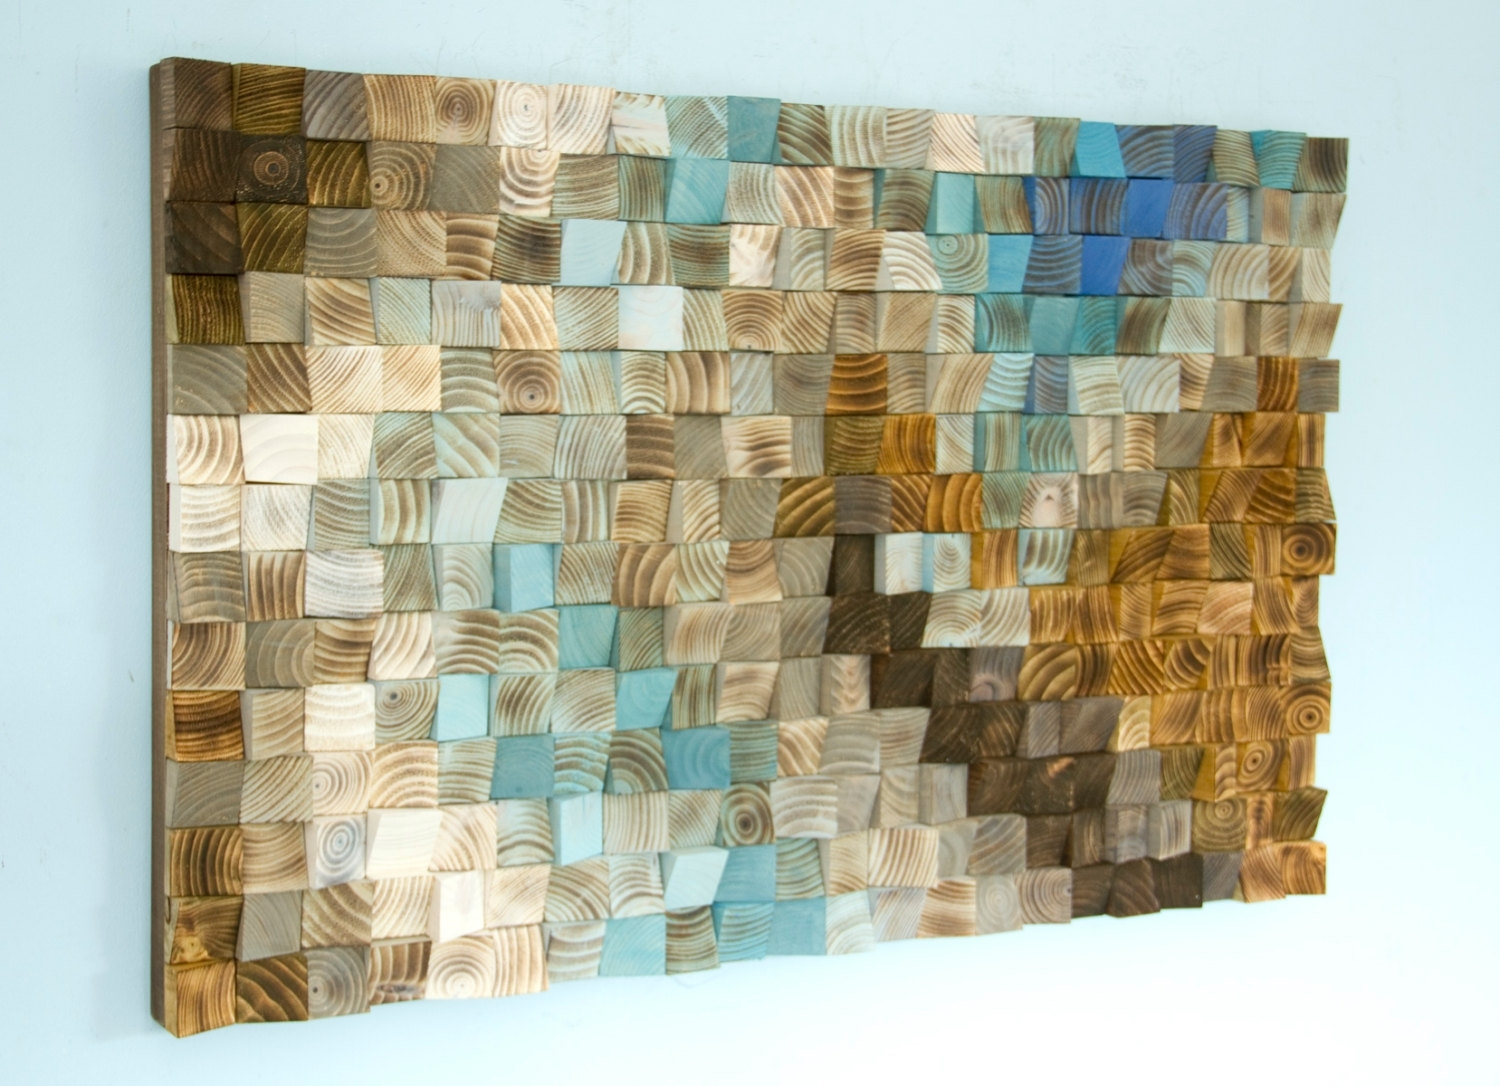 Mosaic Wall Art Elegant Wood Office Decor Geometric 24 X 36 Within With Newest Mosaic Wall Art (View 9 of 15)